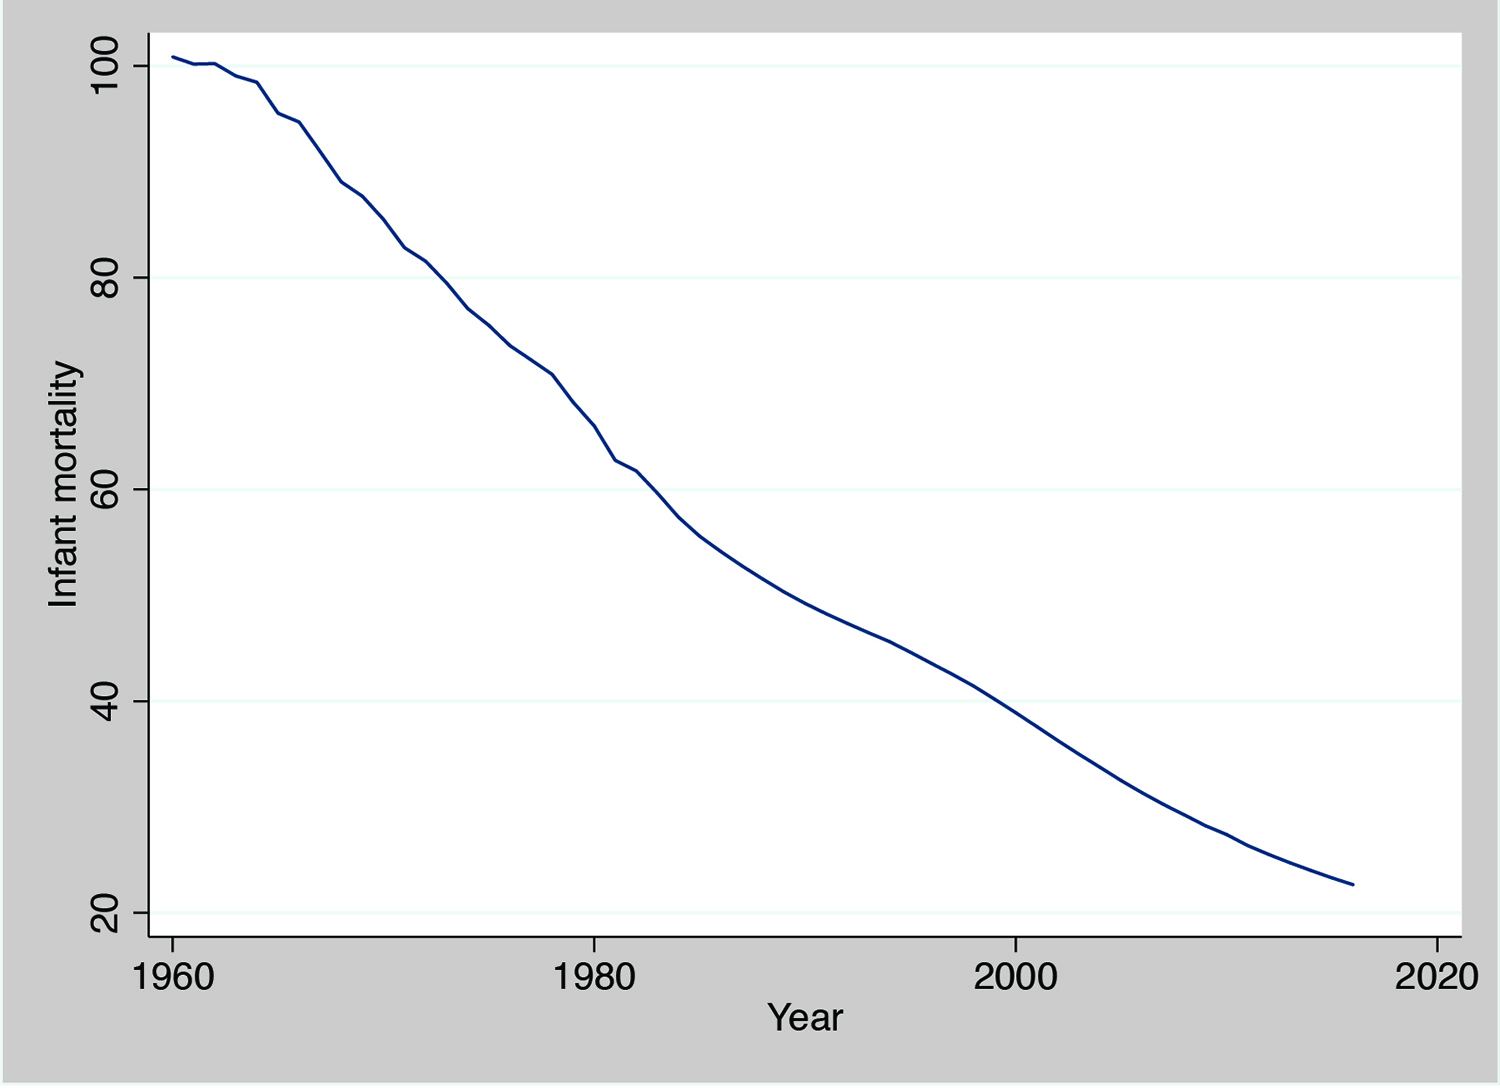 graph for figure two - steady decline since 1960